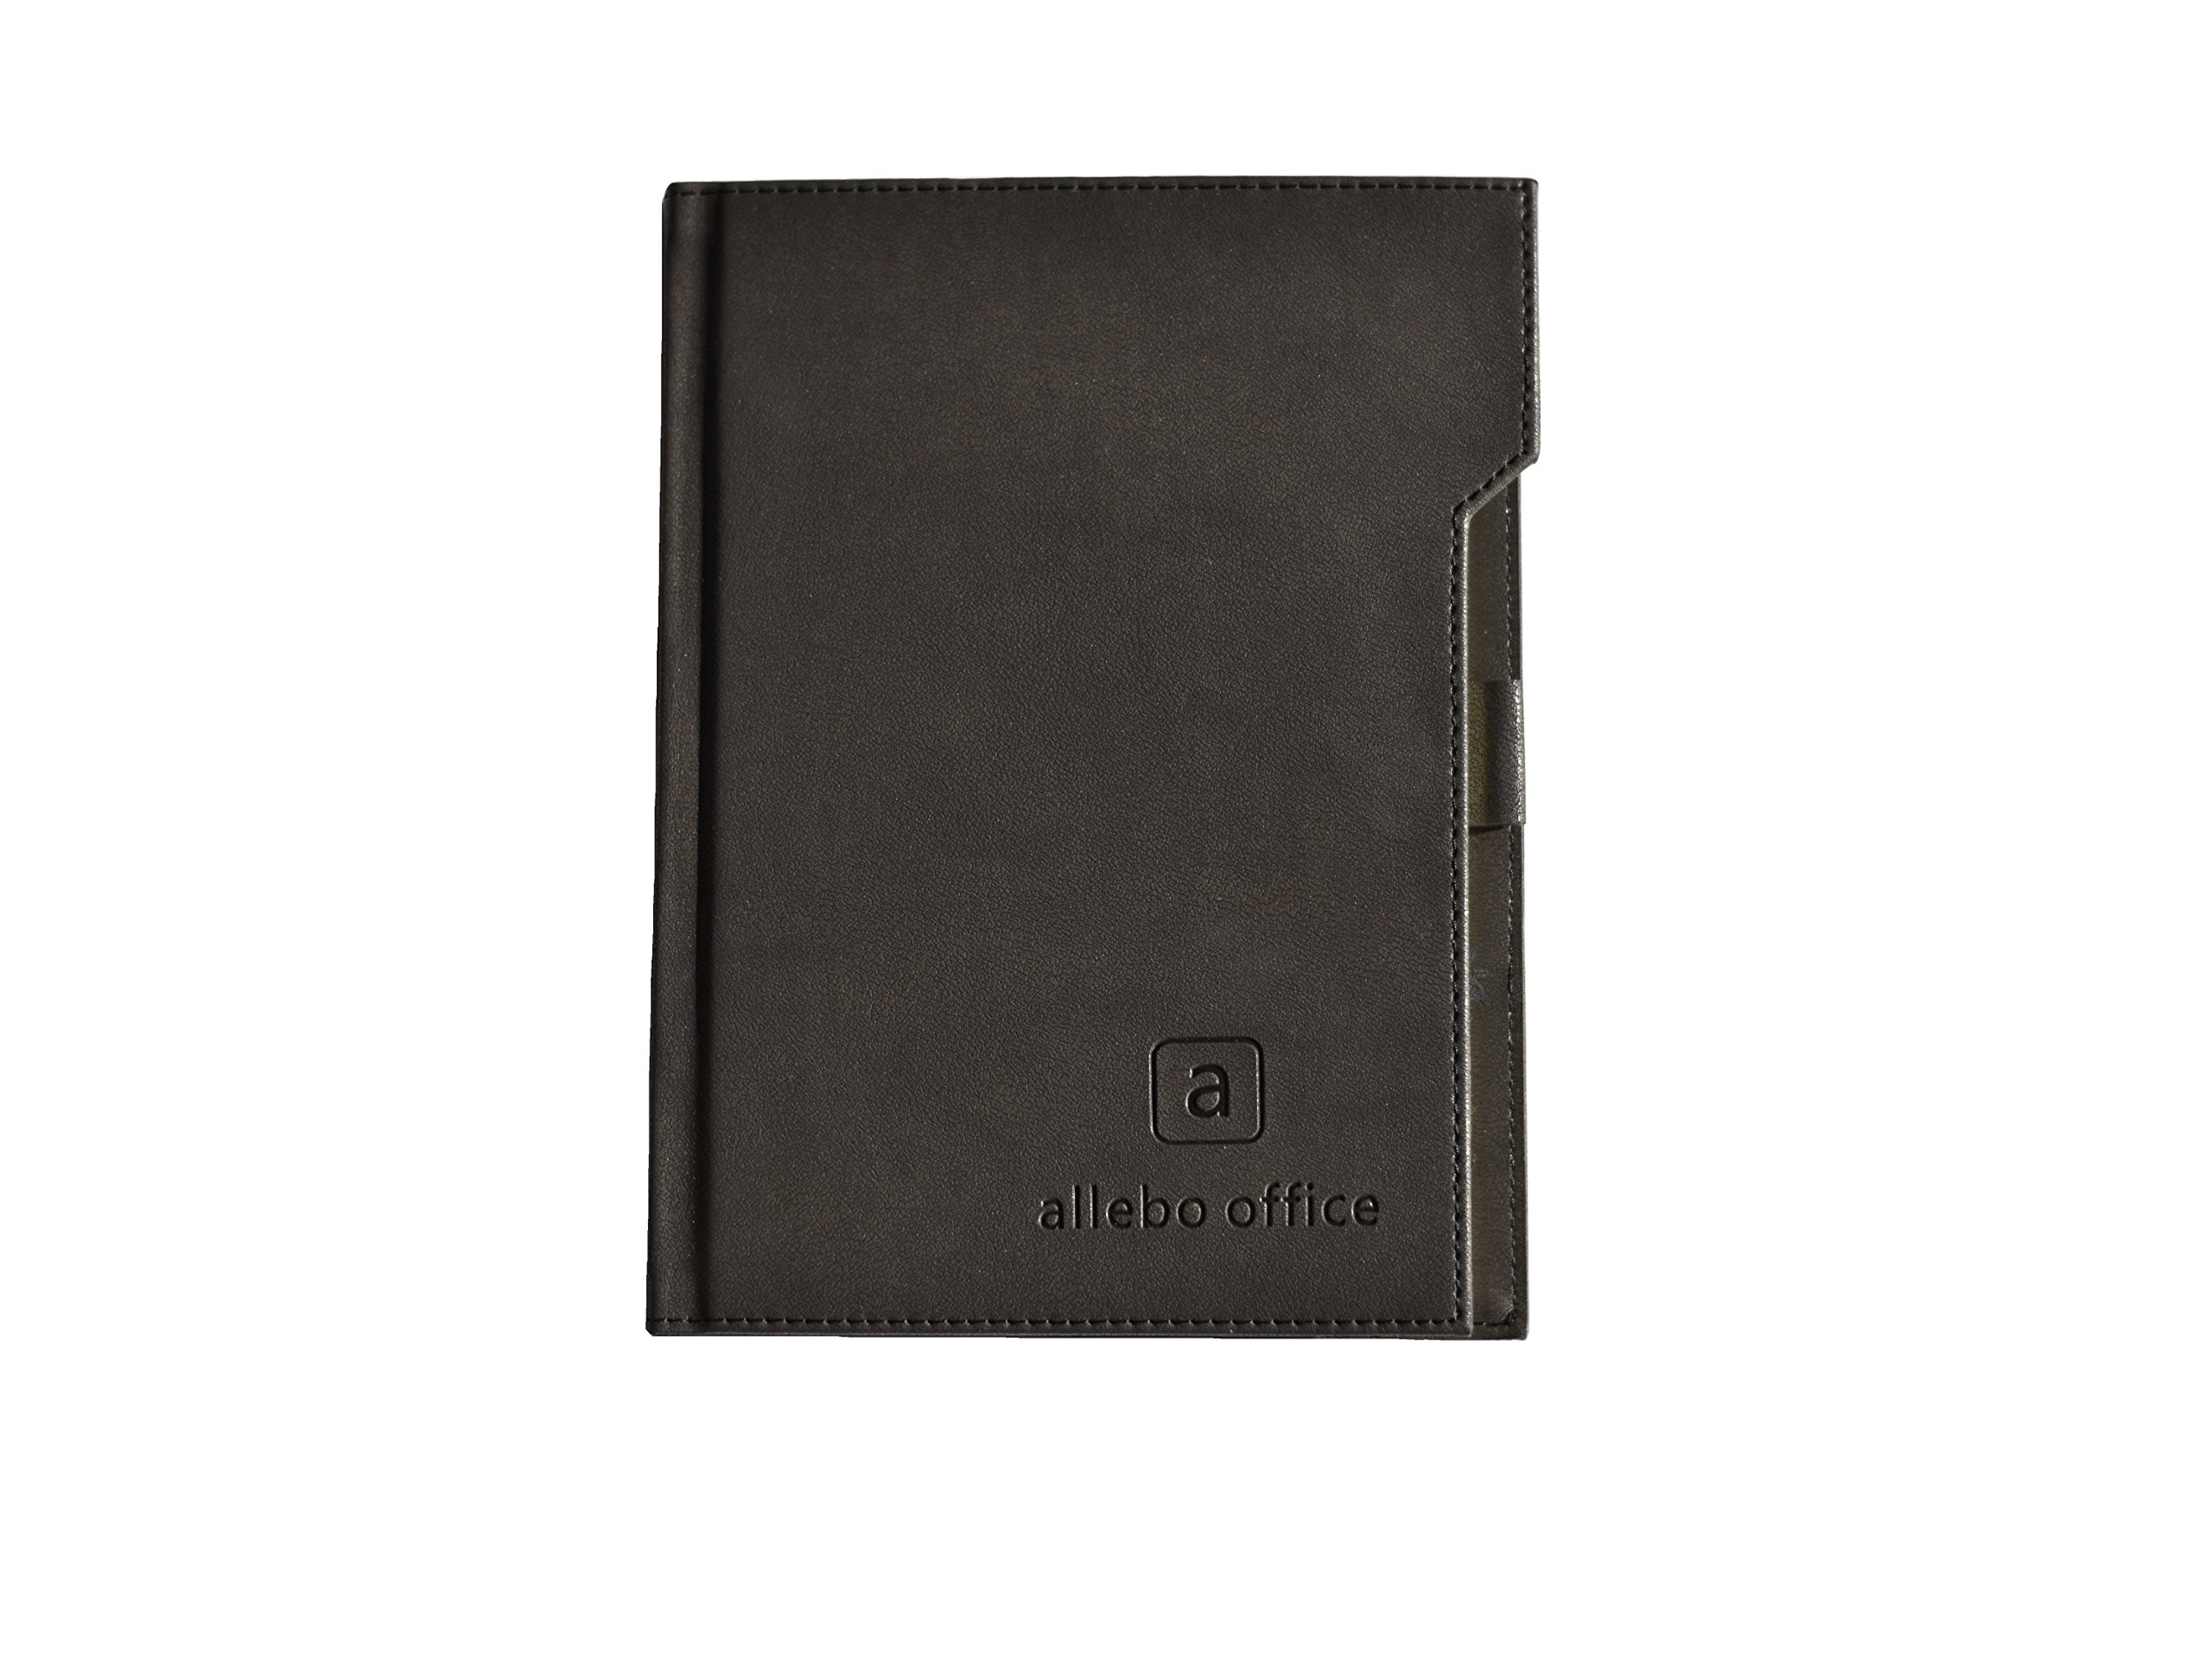 2018-2019 Yearly Planner - Weekly Goal/Day Organizer - Black Hardcover With Pen Holder and Inner Pouch - Allebo Office